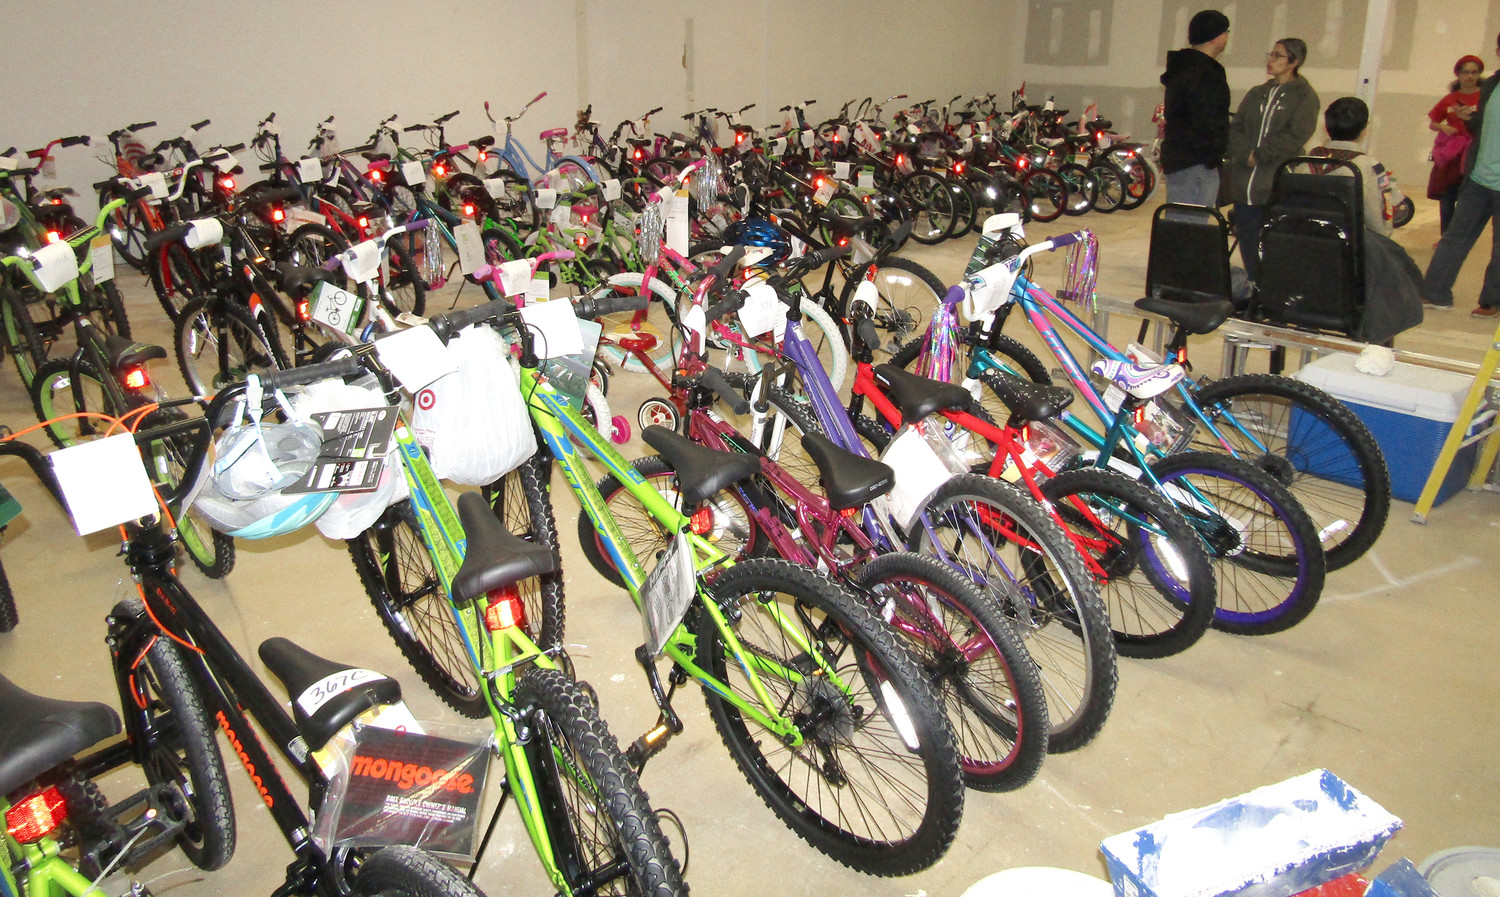 ALMOST 100 brand new bicycles stand ready to make some children's Christmases brighter as they are prepared to be distributed by the Salvation Army.